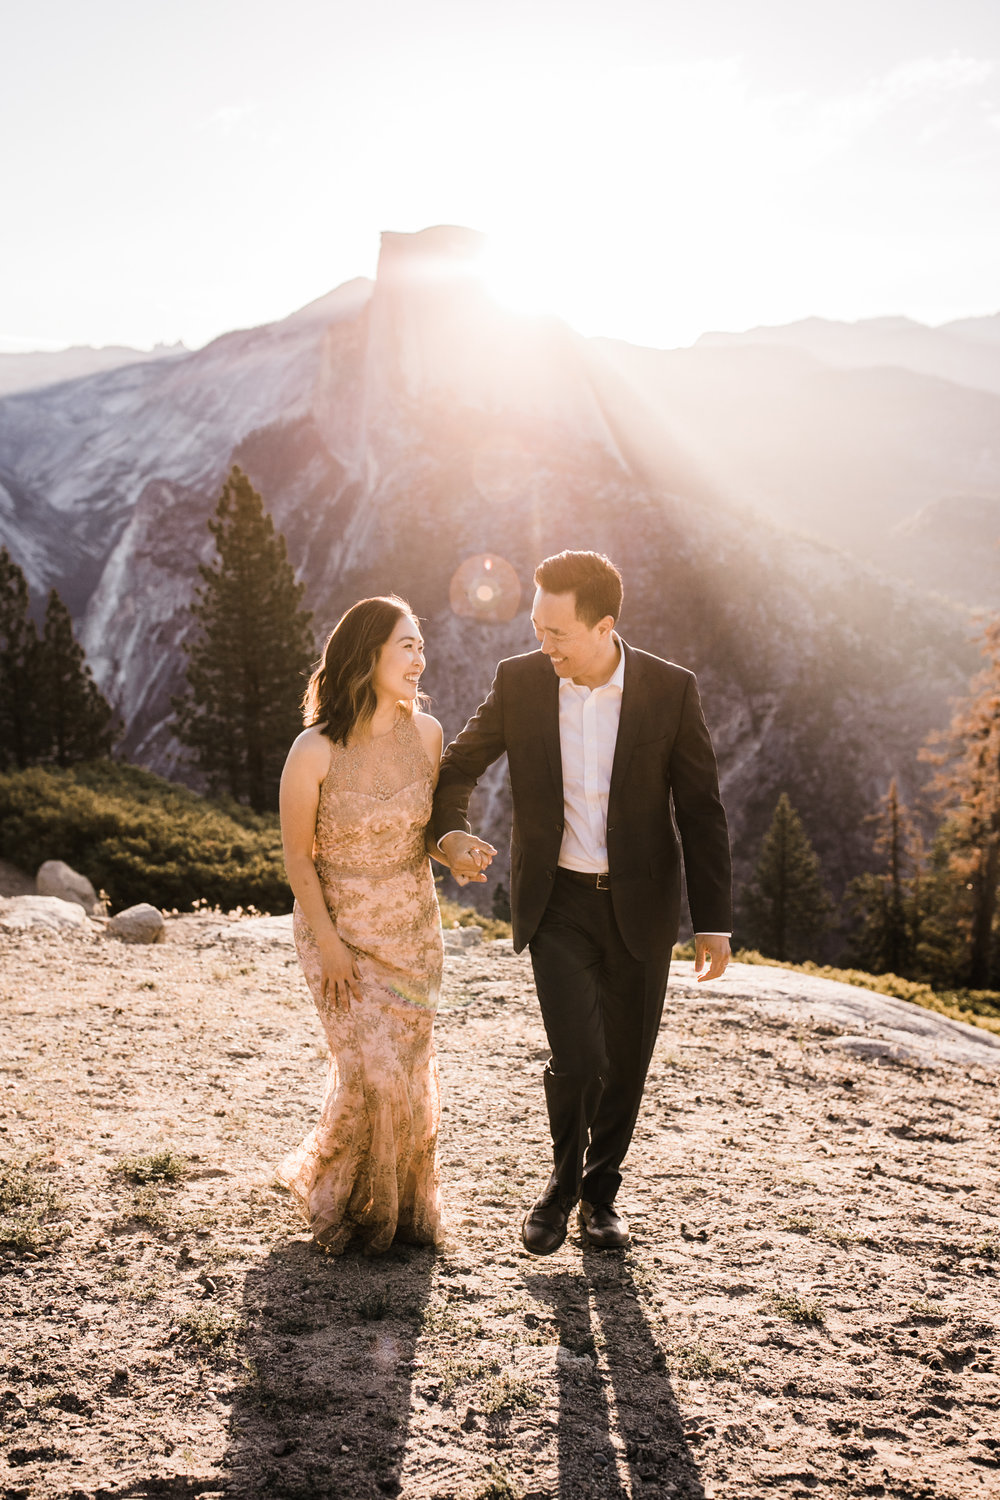 michelle + doug's adventure session at glacier point | 10 year wedding anniversary celebration | yosemite elopement inspiration | the hearnes adventure photography